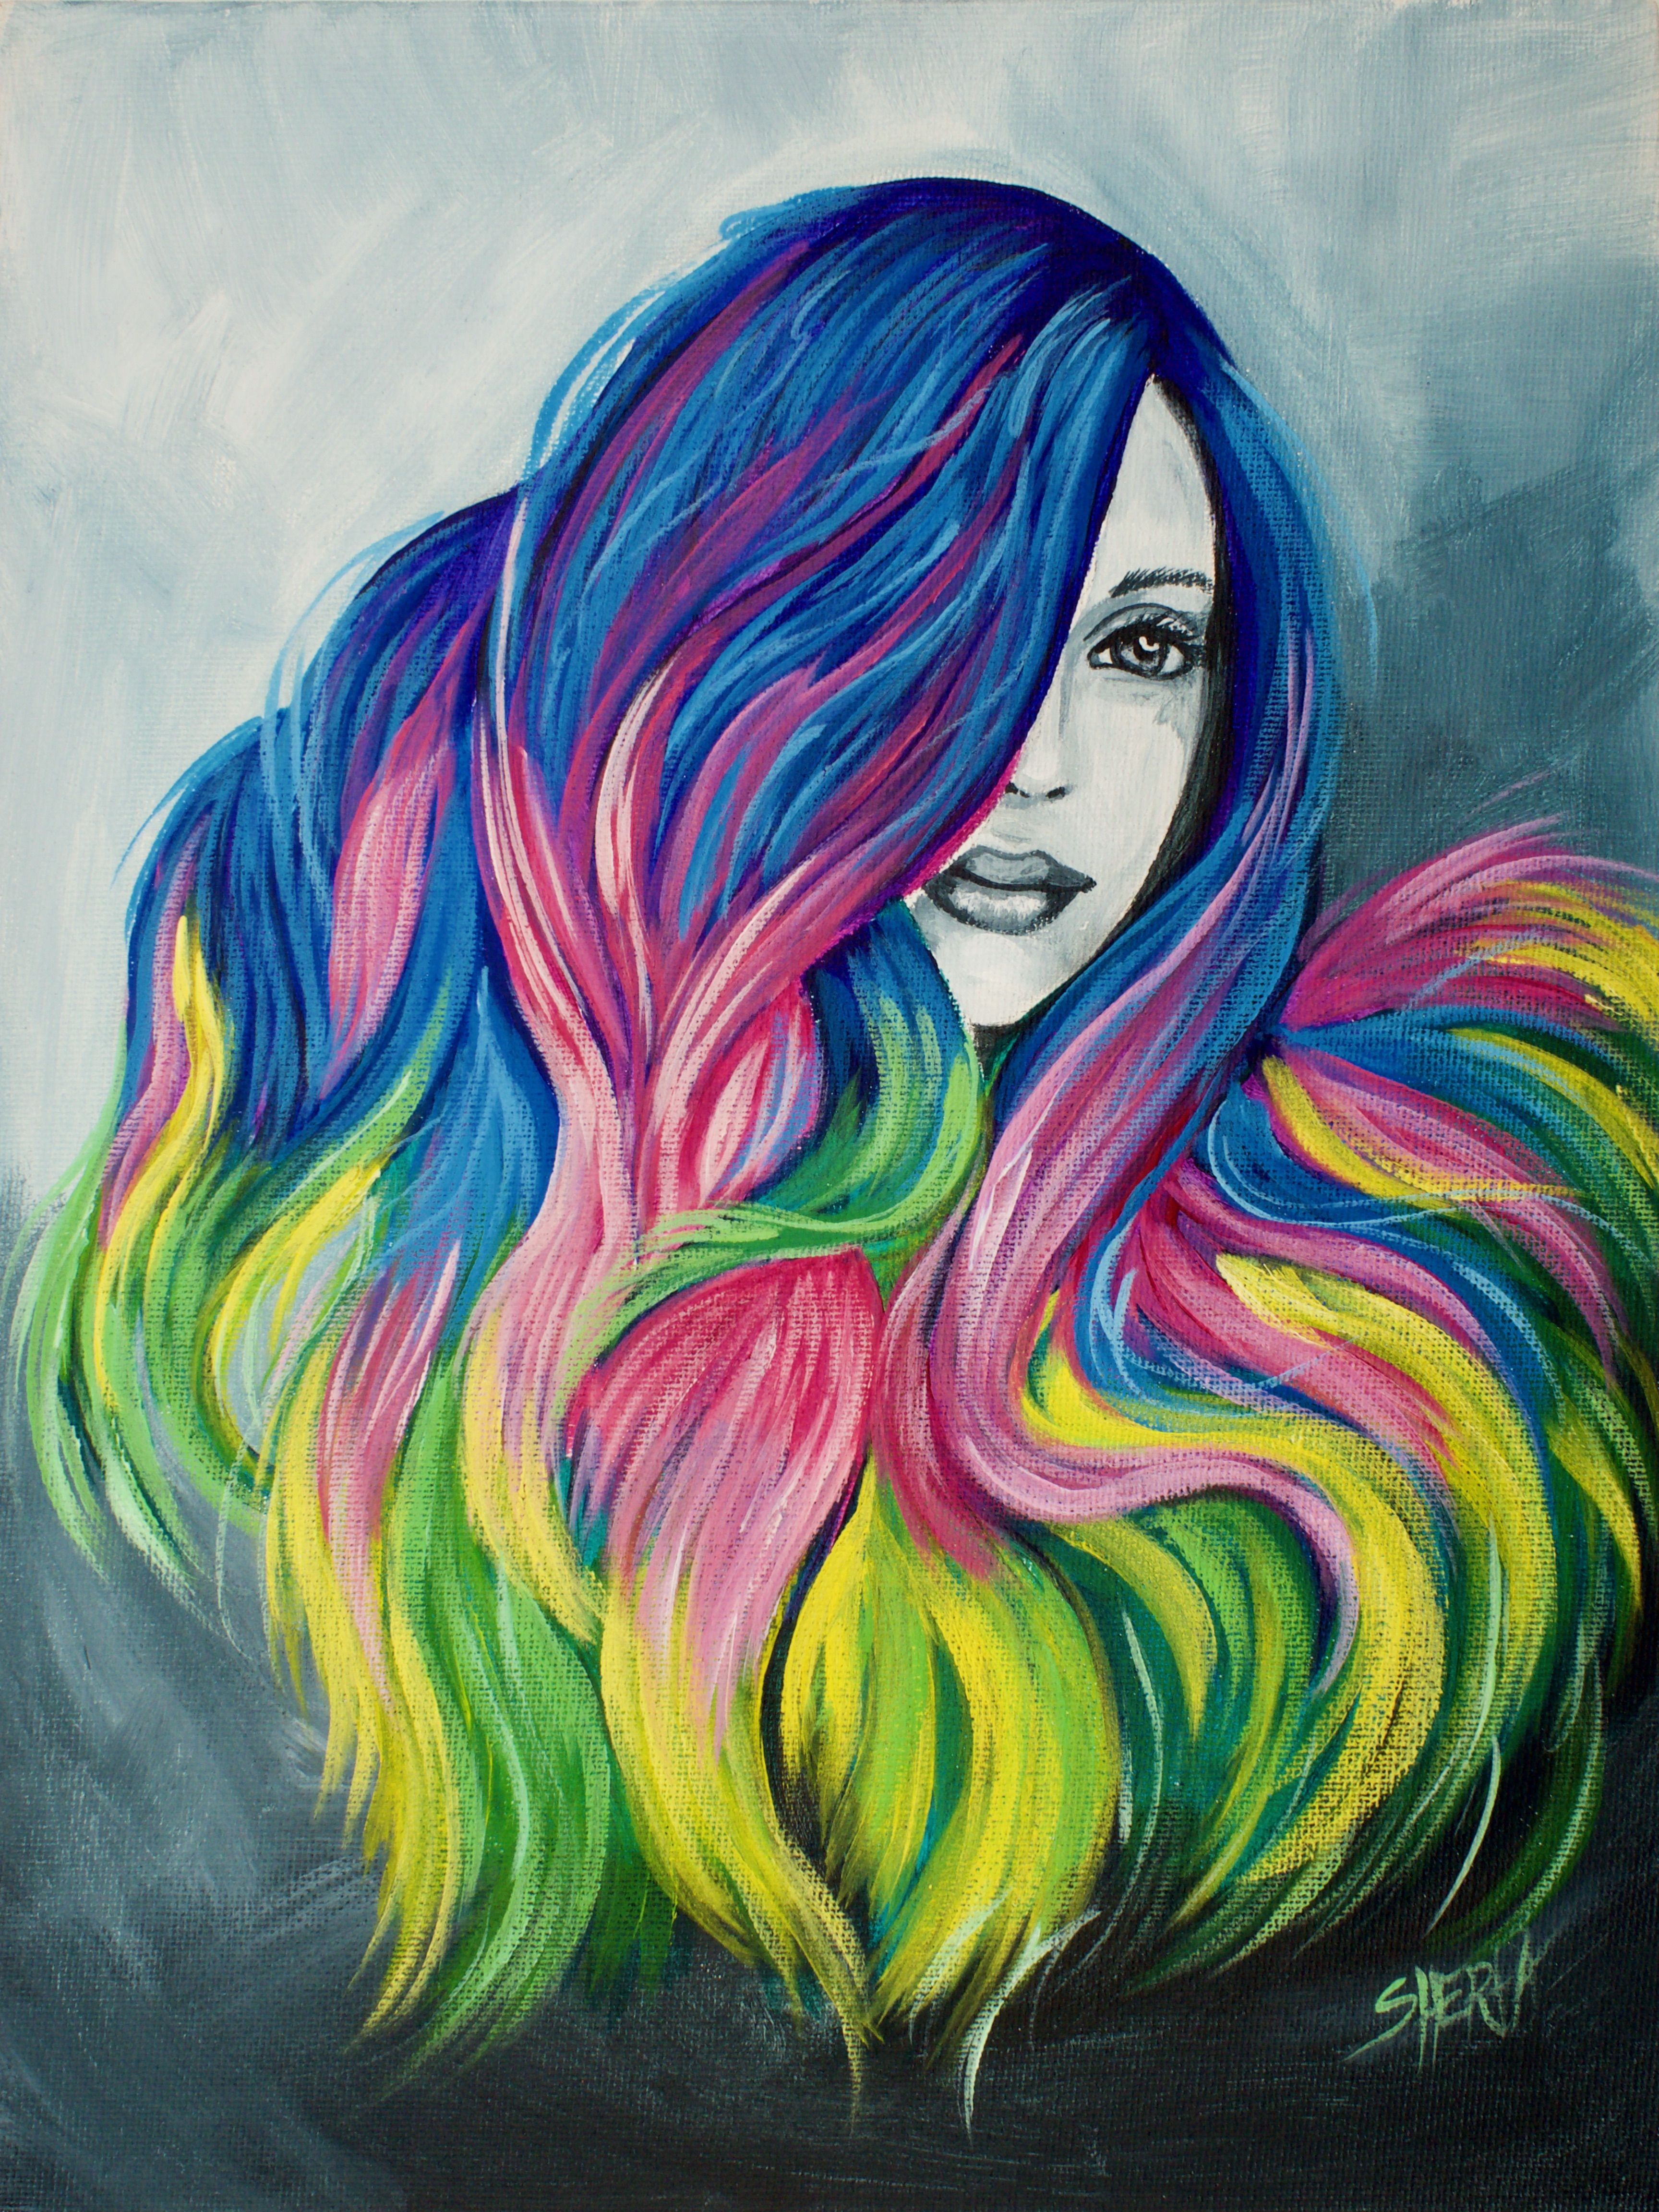 Learn To Paint Unicorn Hair Acrylic Painting Painting Inspired By Guy Tang By The Art Sherpa Www Theartsherpa Com M The Art Sherpa Art Painting Oil Pastel Art